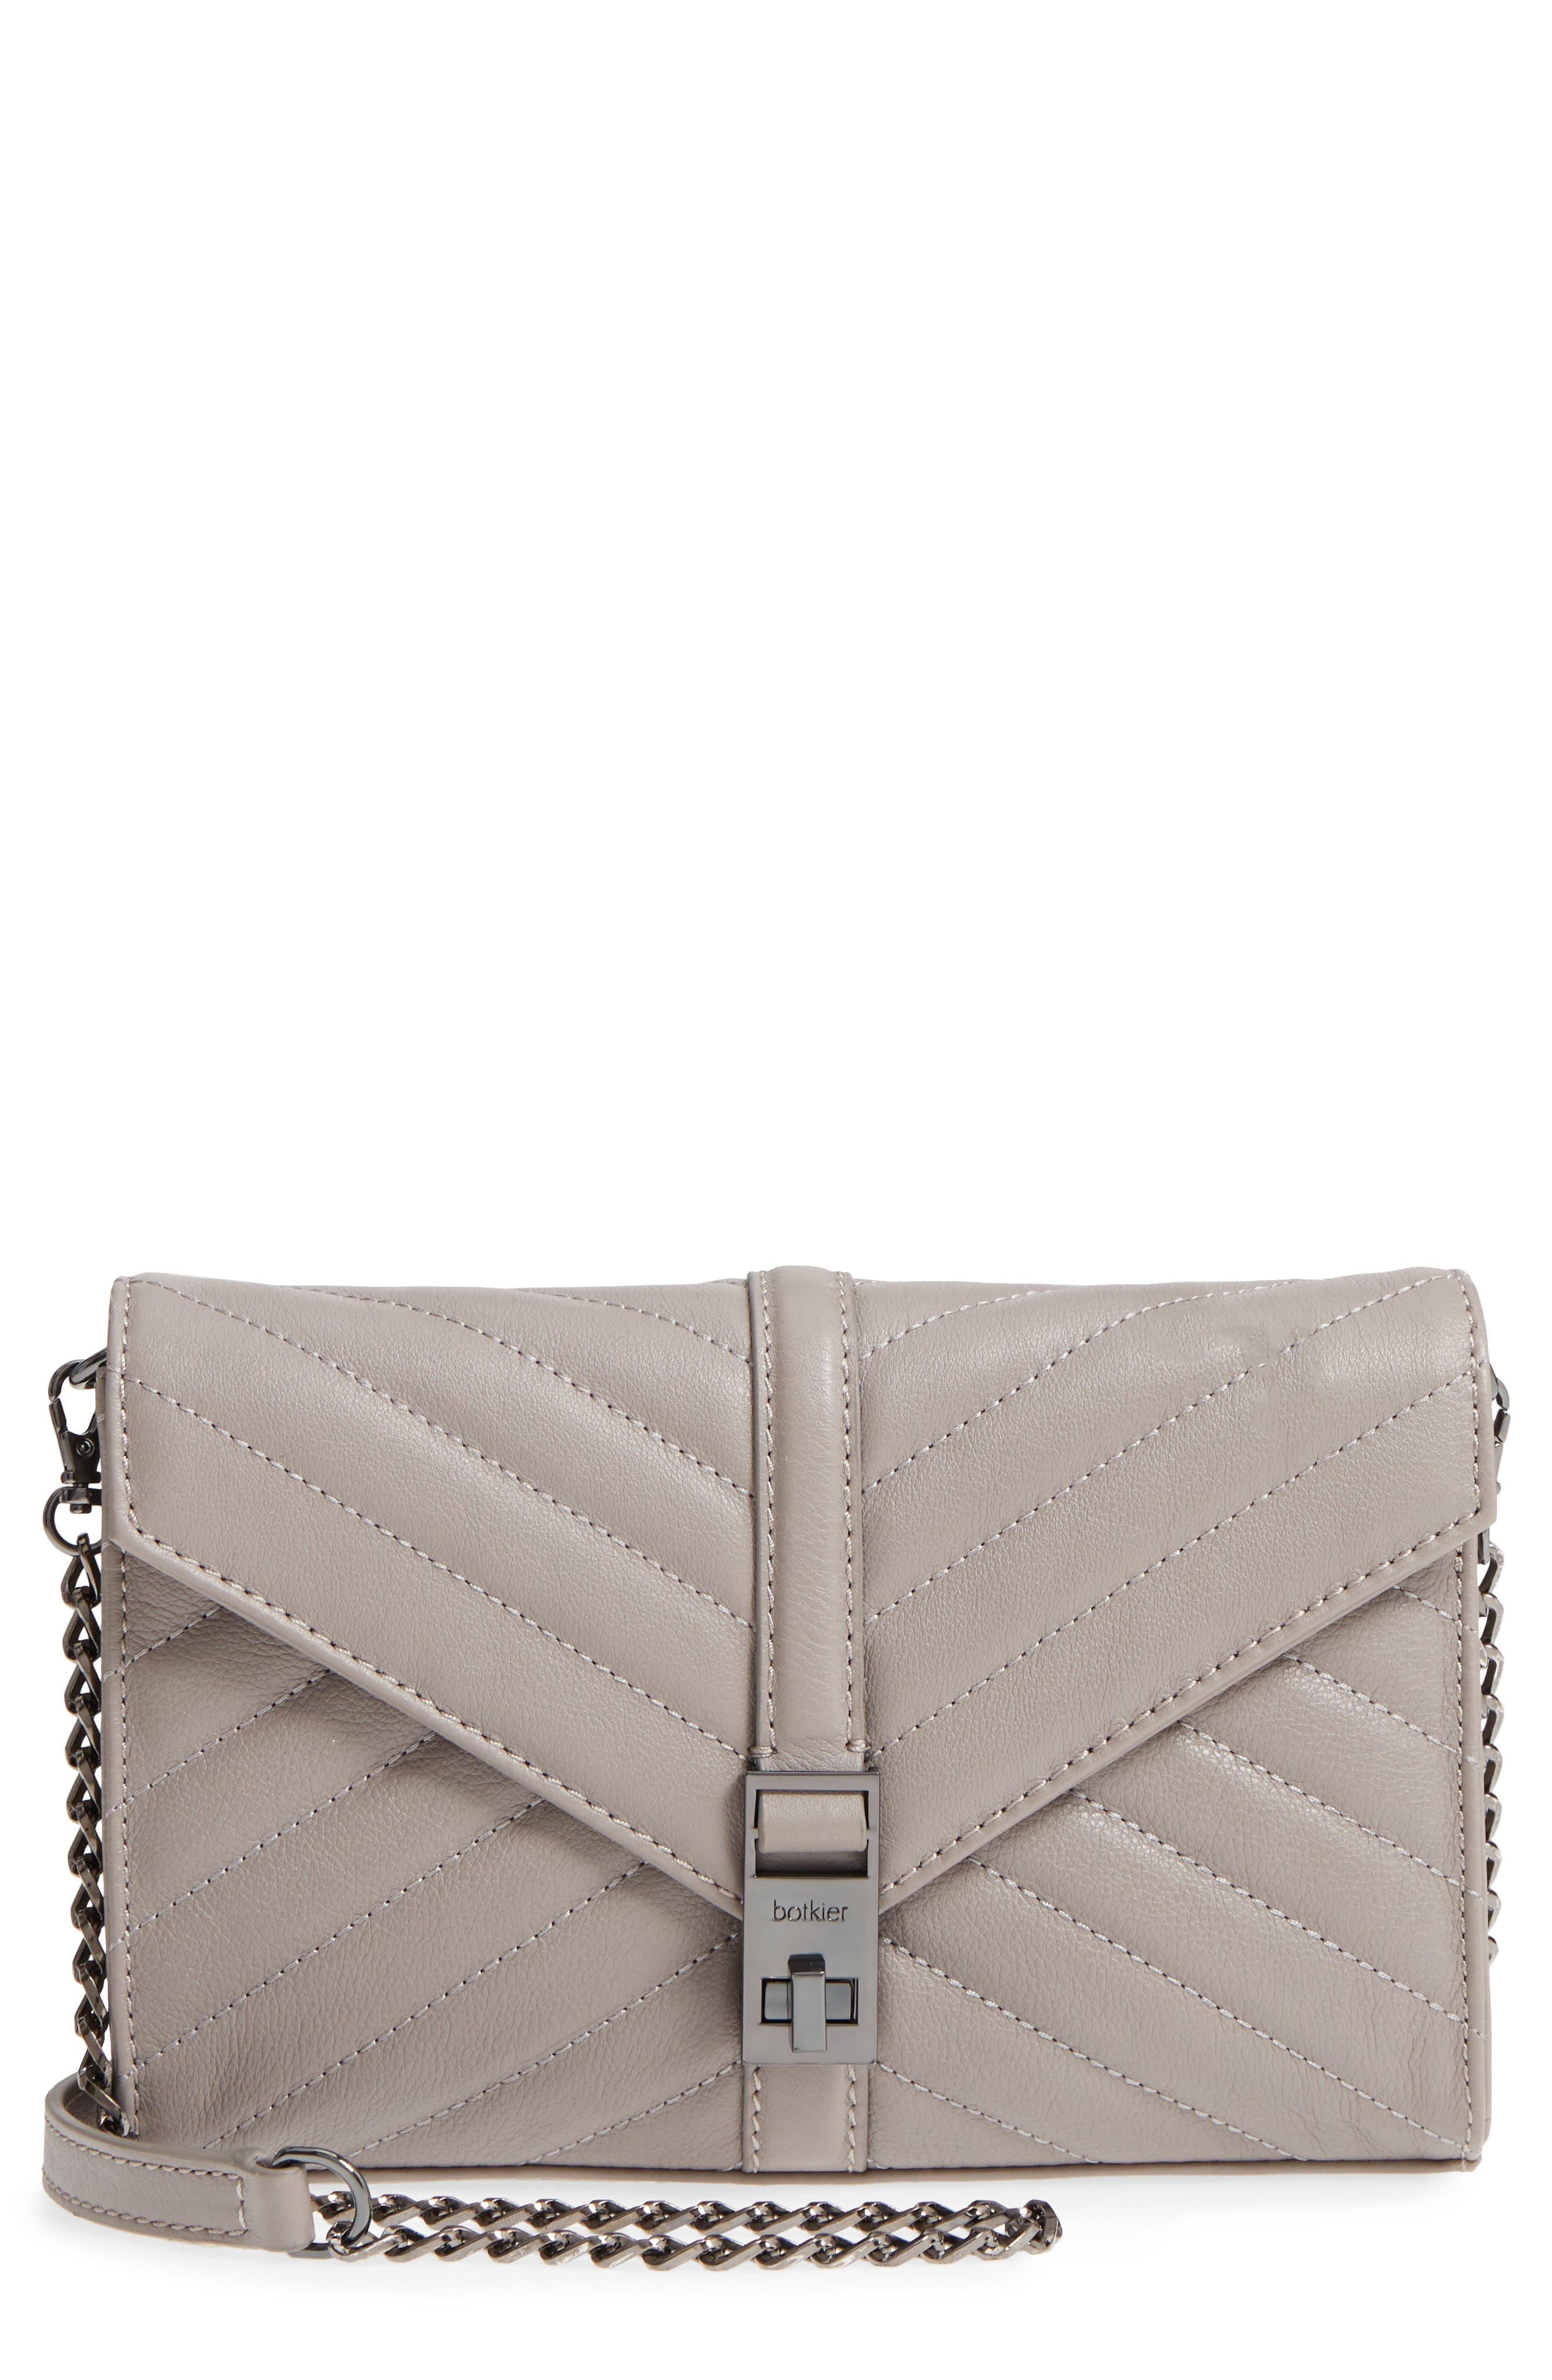 Dakota Quilted Leather Clutch,                         Main,                         color, 020